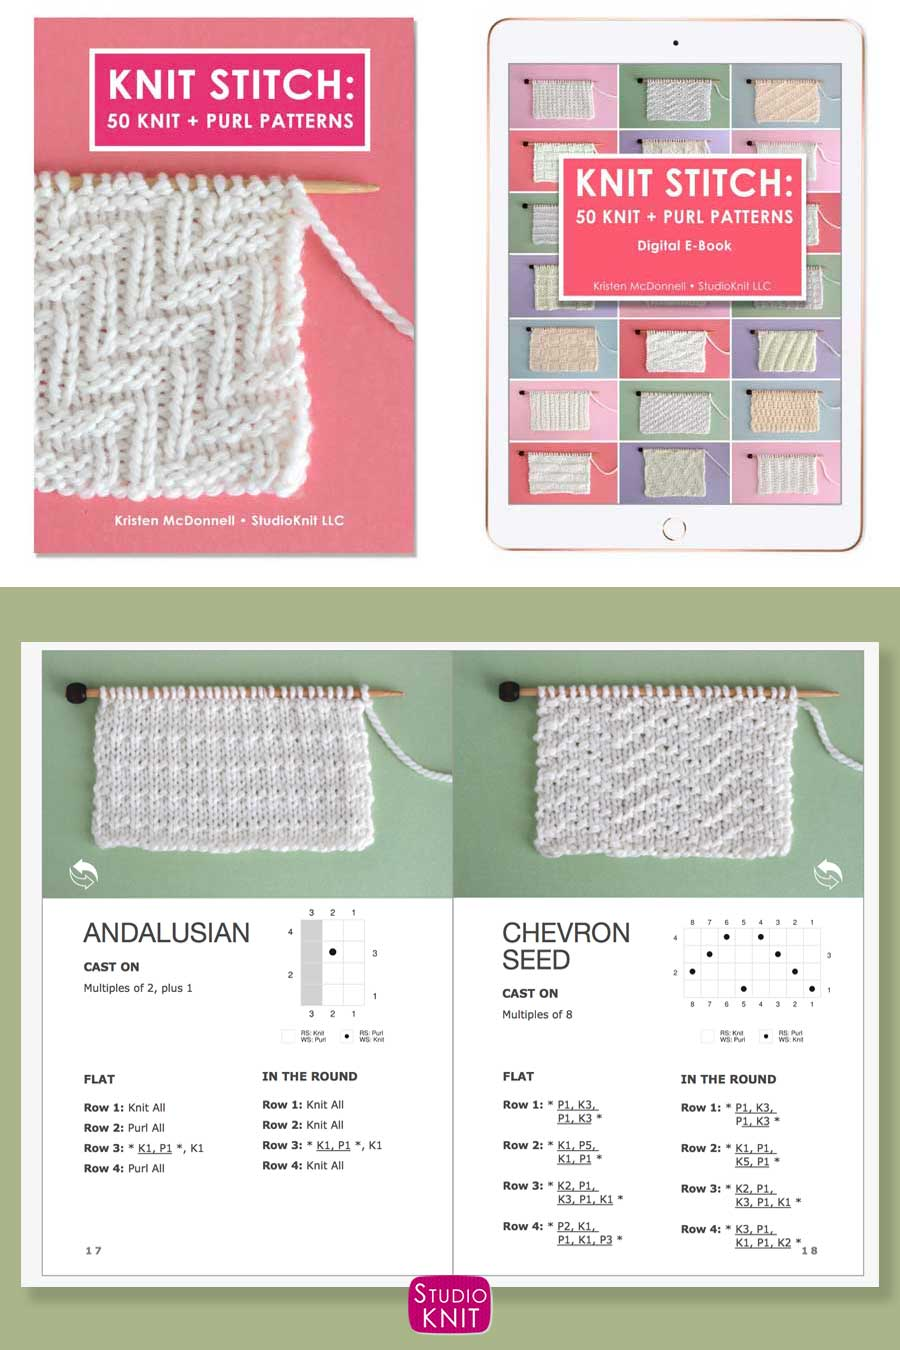 Knit Stitch Pattern Book with Chevron Seed Stitch Pattern by Studio Knit